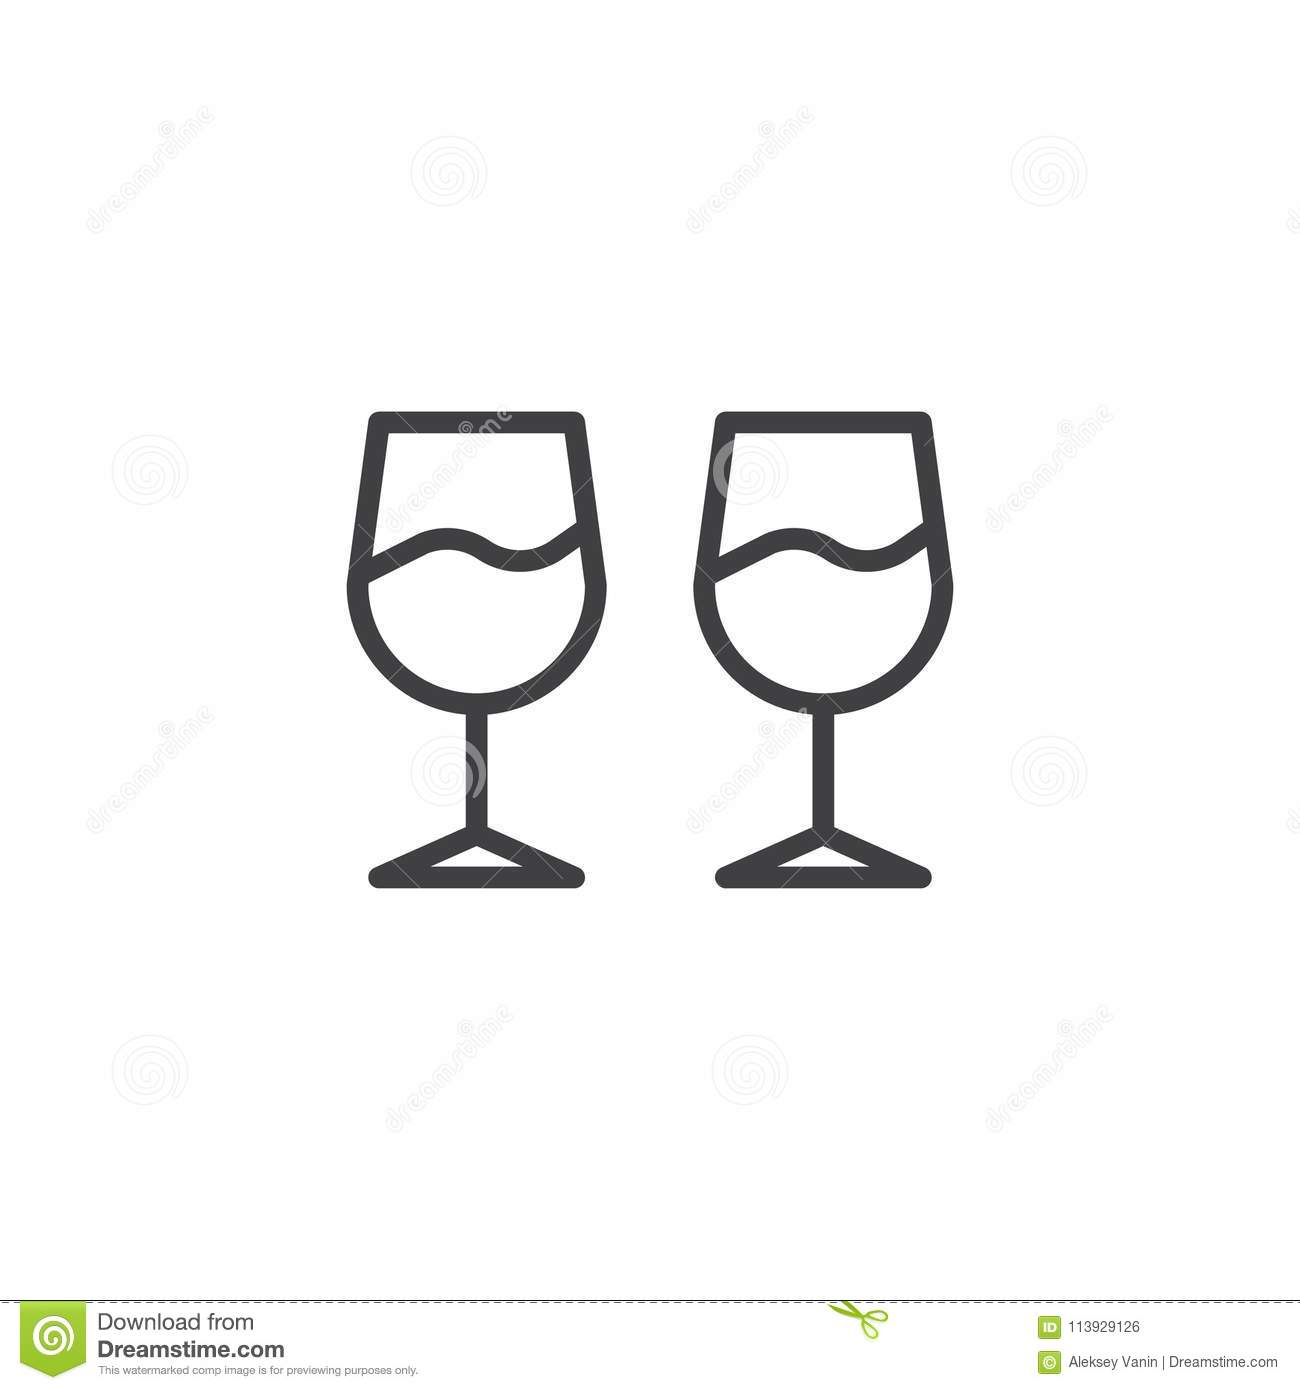 Wine glasses outline icon stock vector. Illustration of